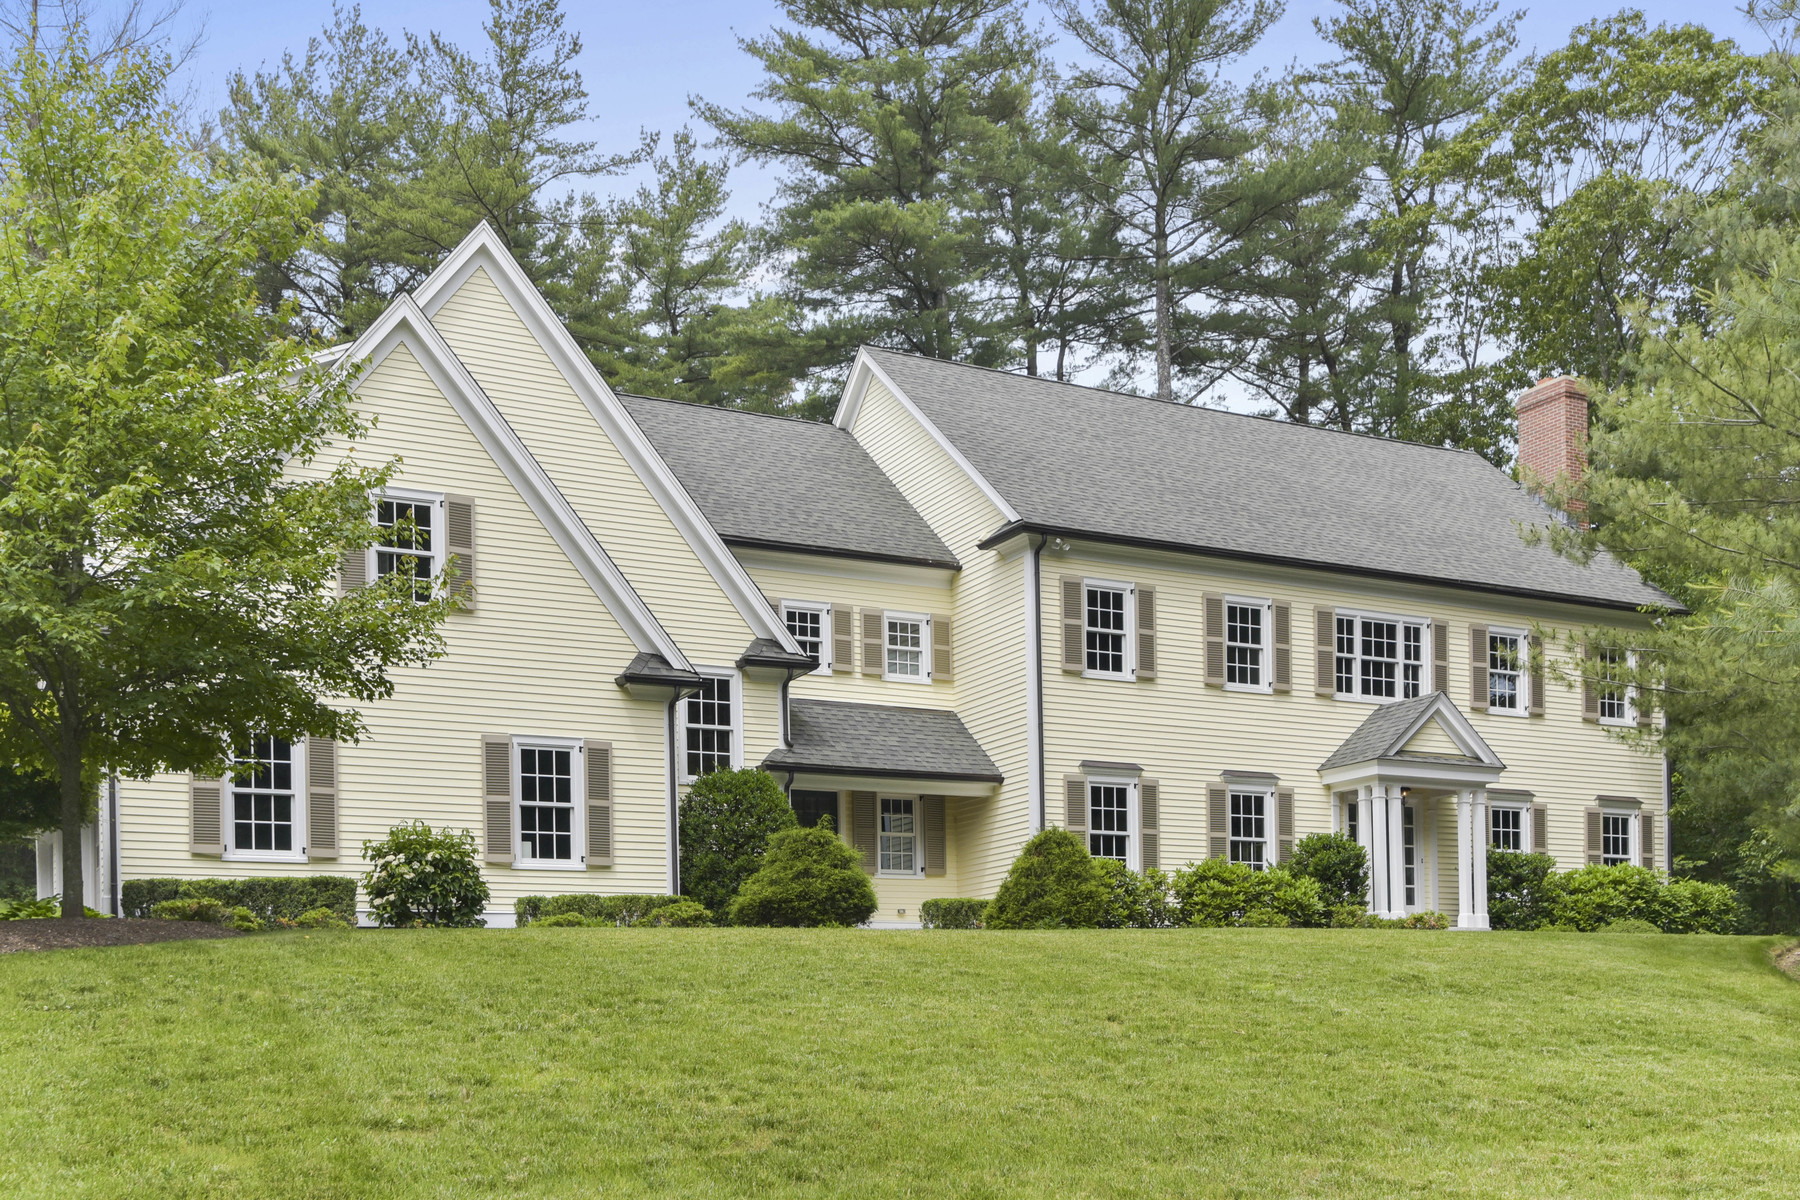 Single Family Home for Sale at This splendid home boasts over 5,200 sq. ft. 81 Montvale Road Weston, Massachusetts, 02493 United States